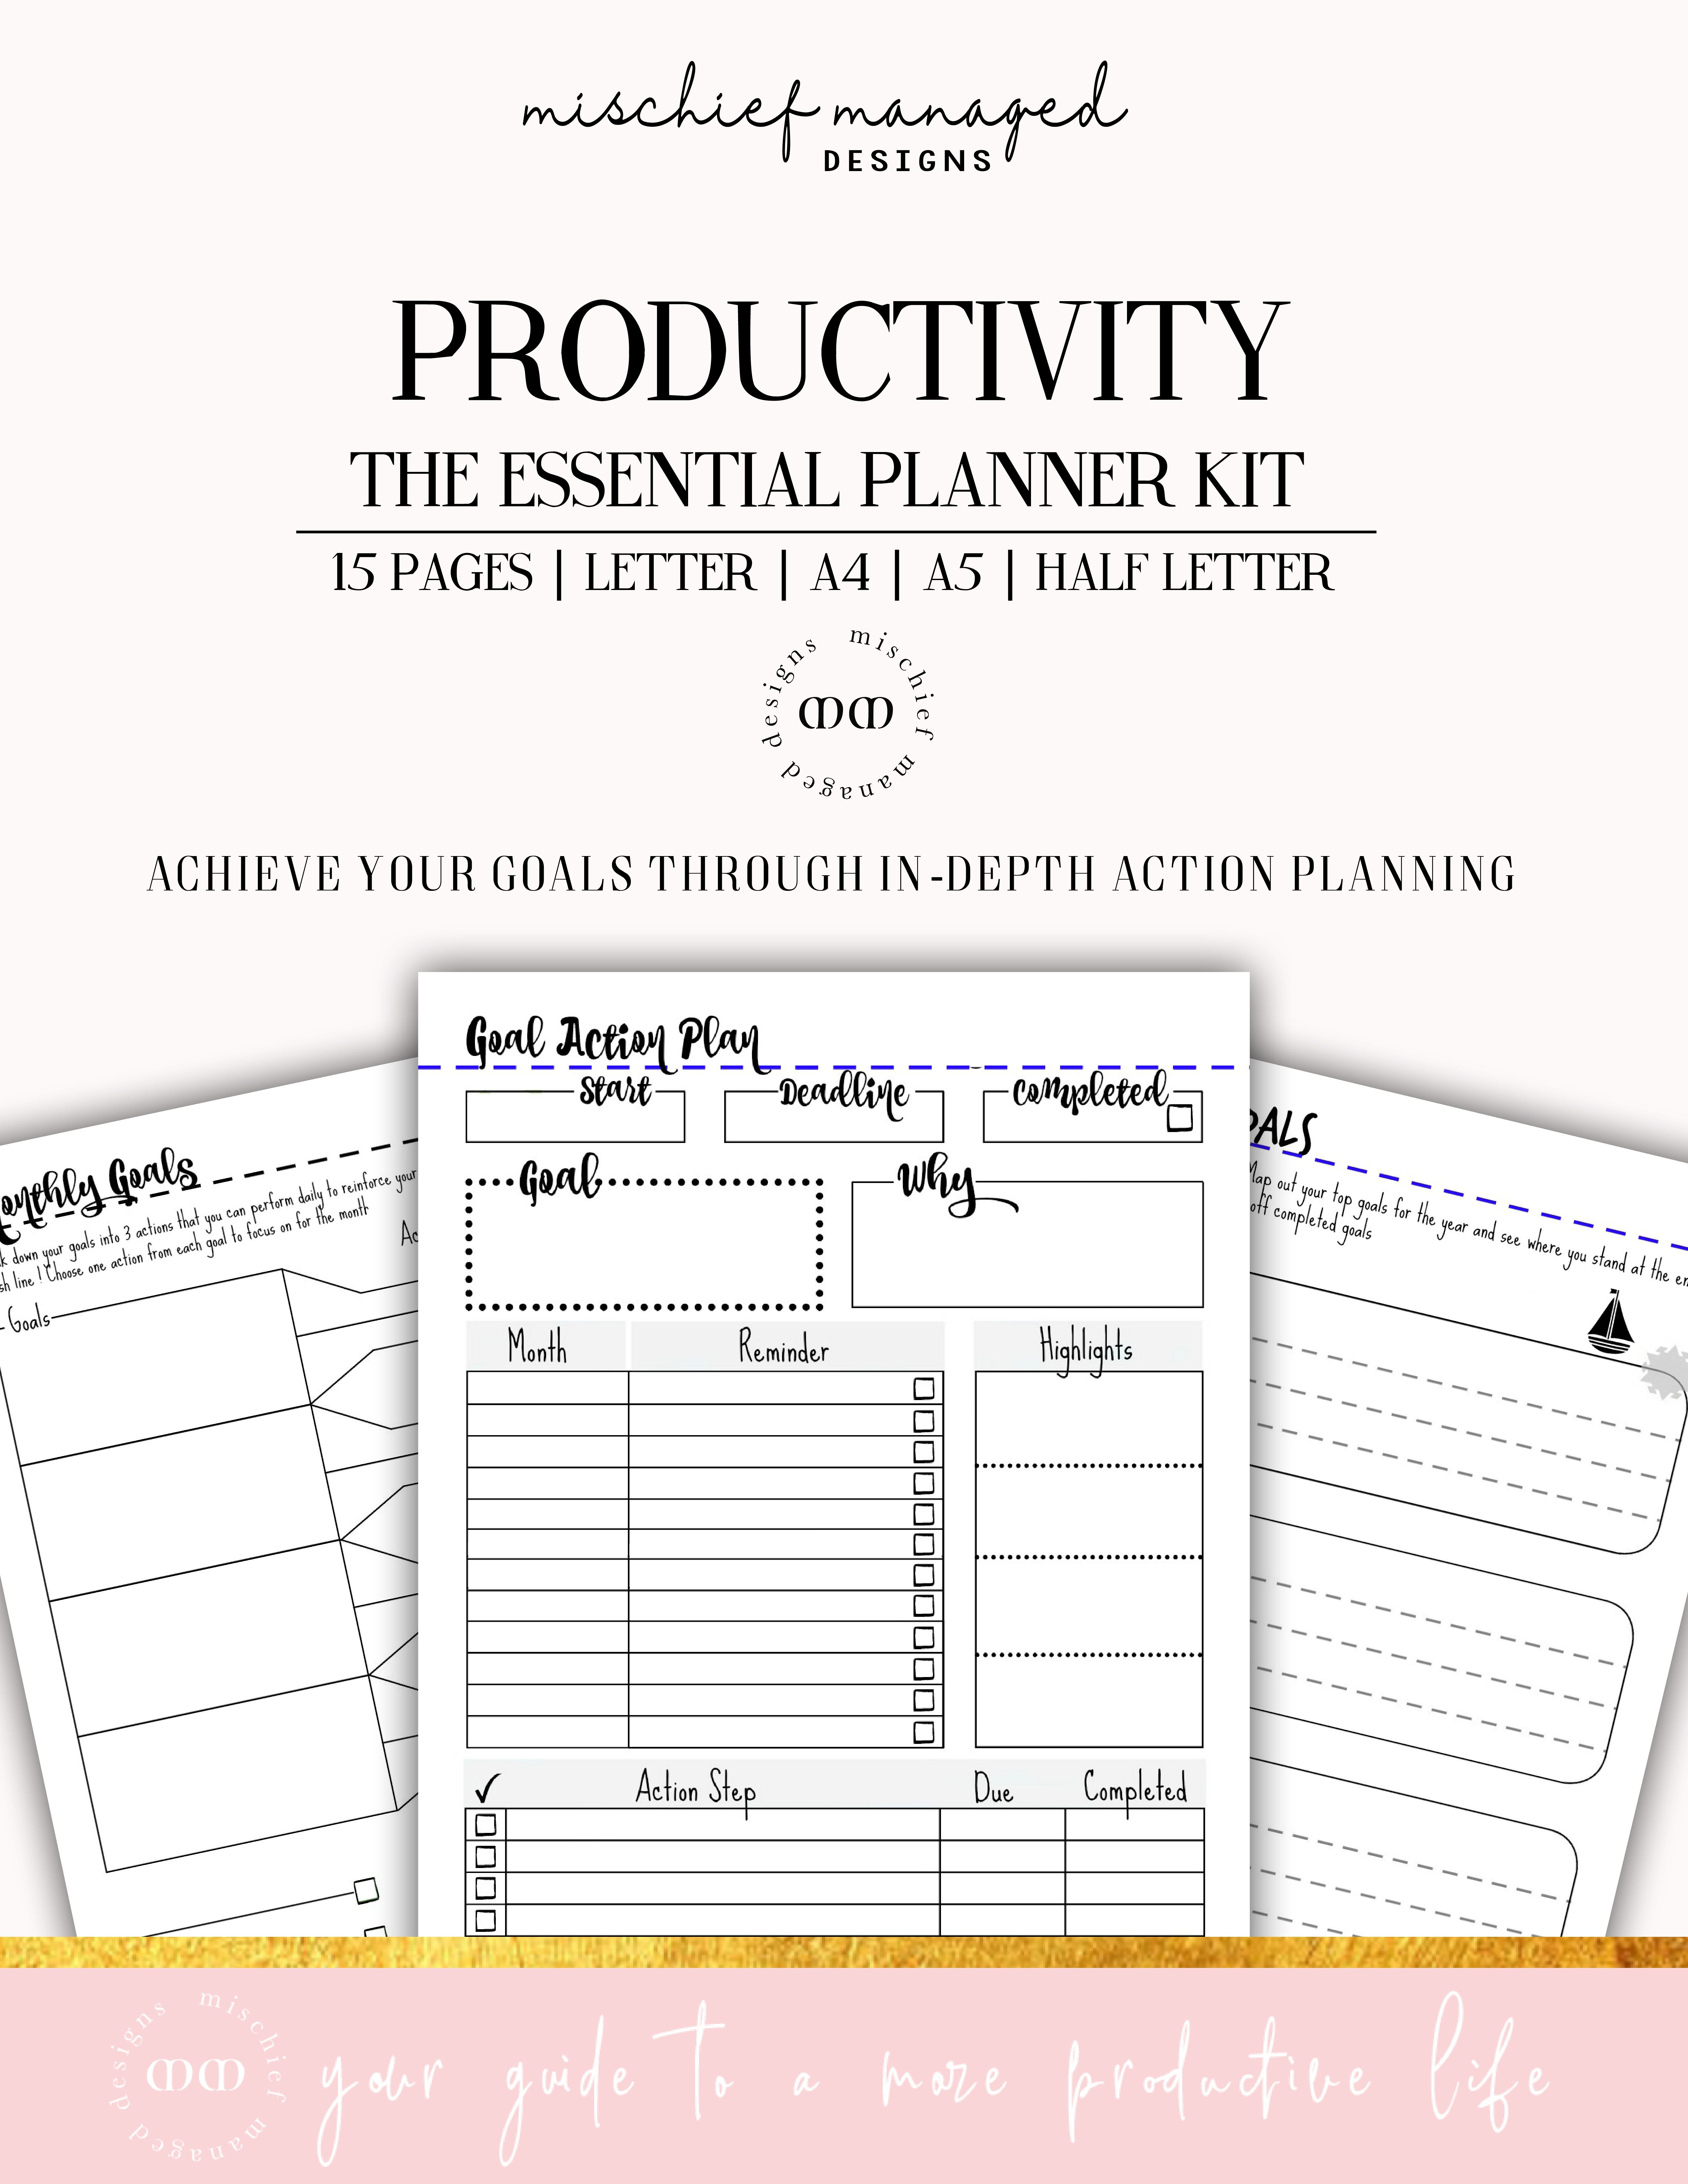 Productivity planner kit 15 pages a4 a5 half letter